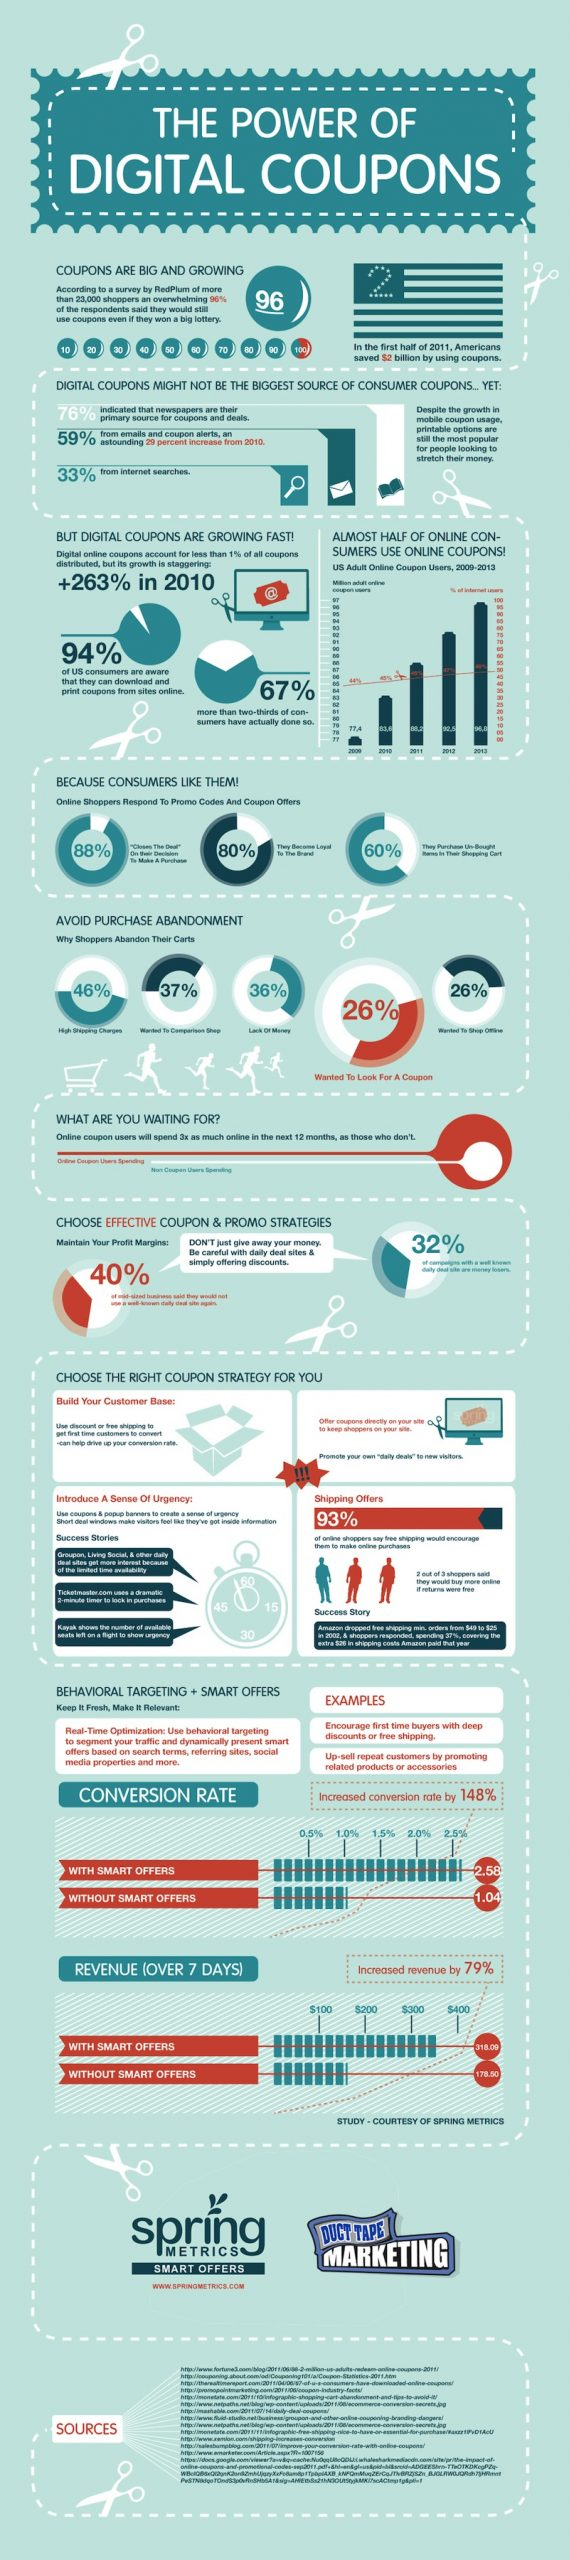 Digital Coupon Infographic